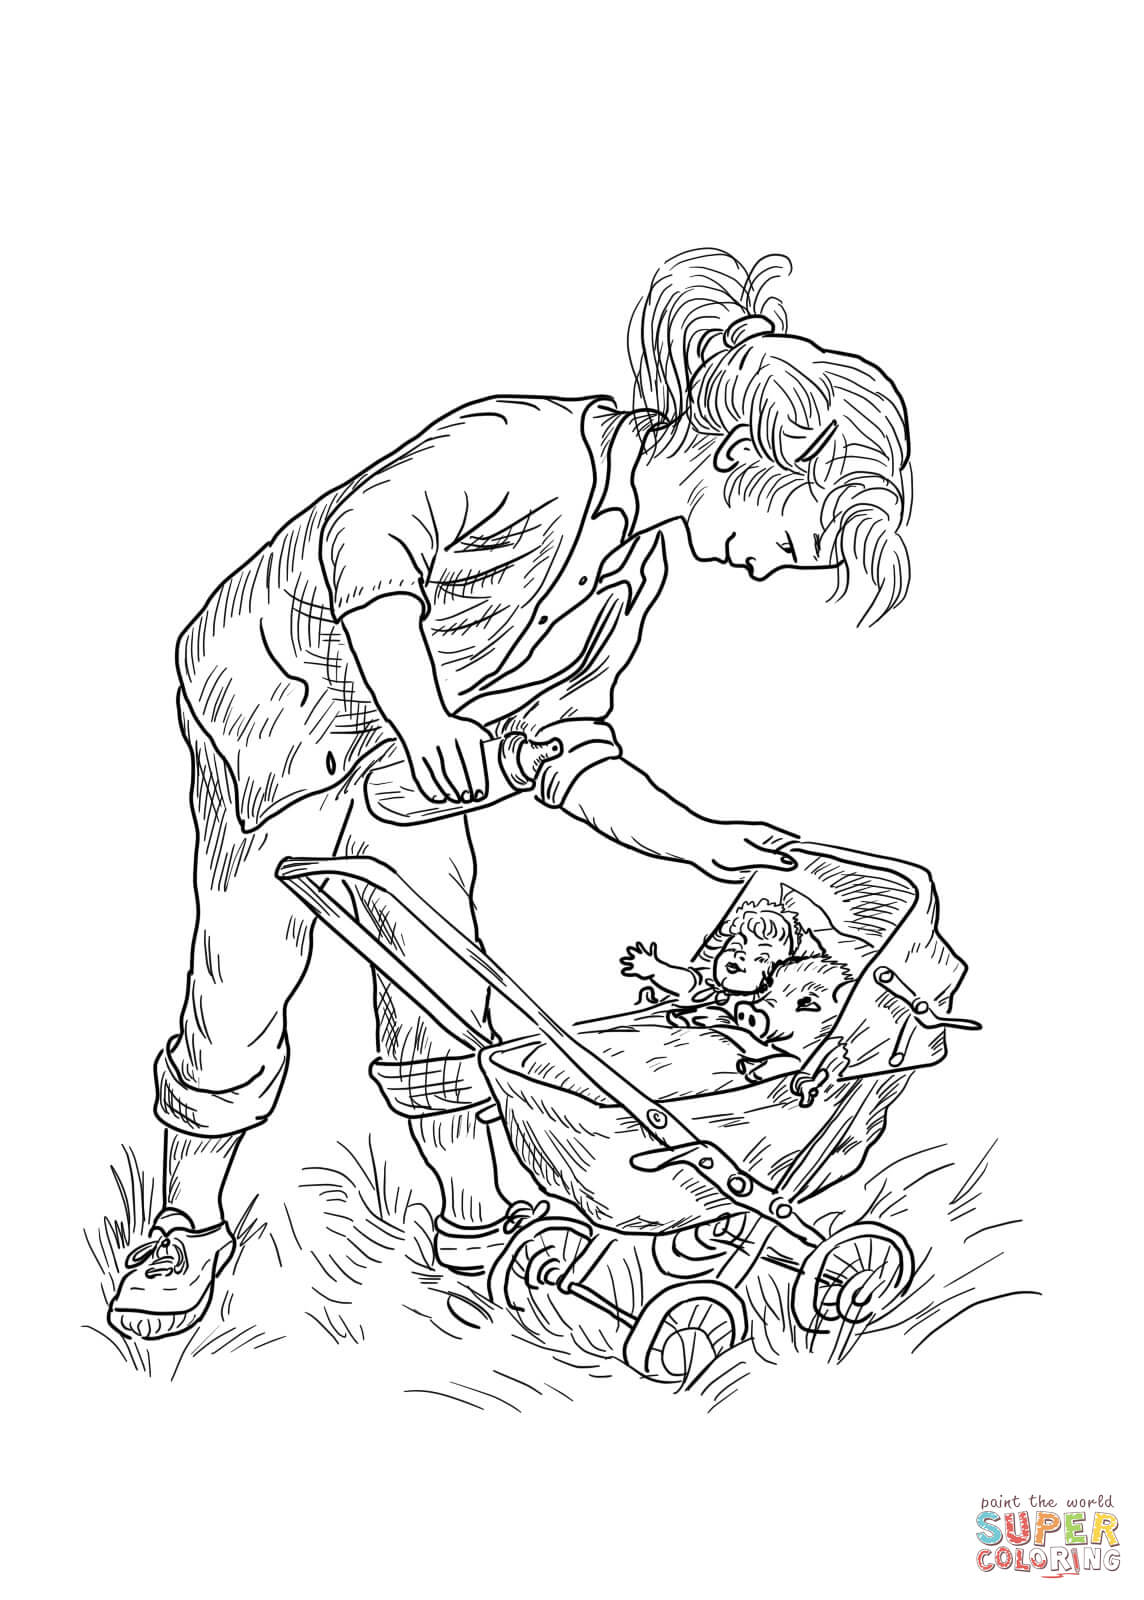 charlottes web character coloring pages - photo#20